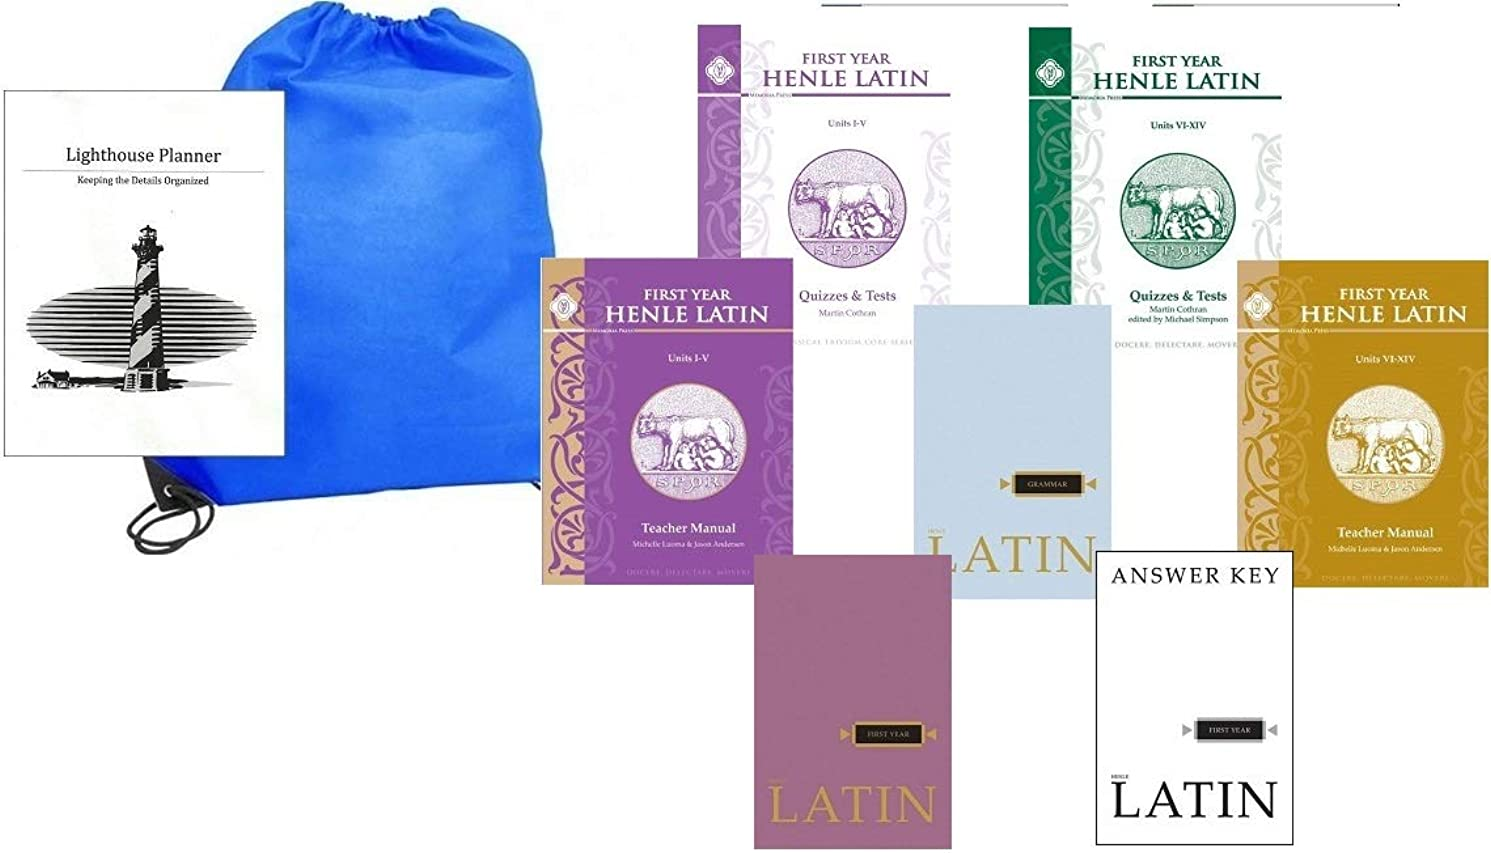 Henle Latin First Year Complete Set Homeschool Kit in a Bag